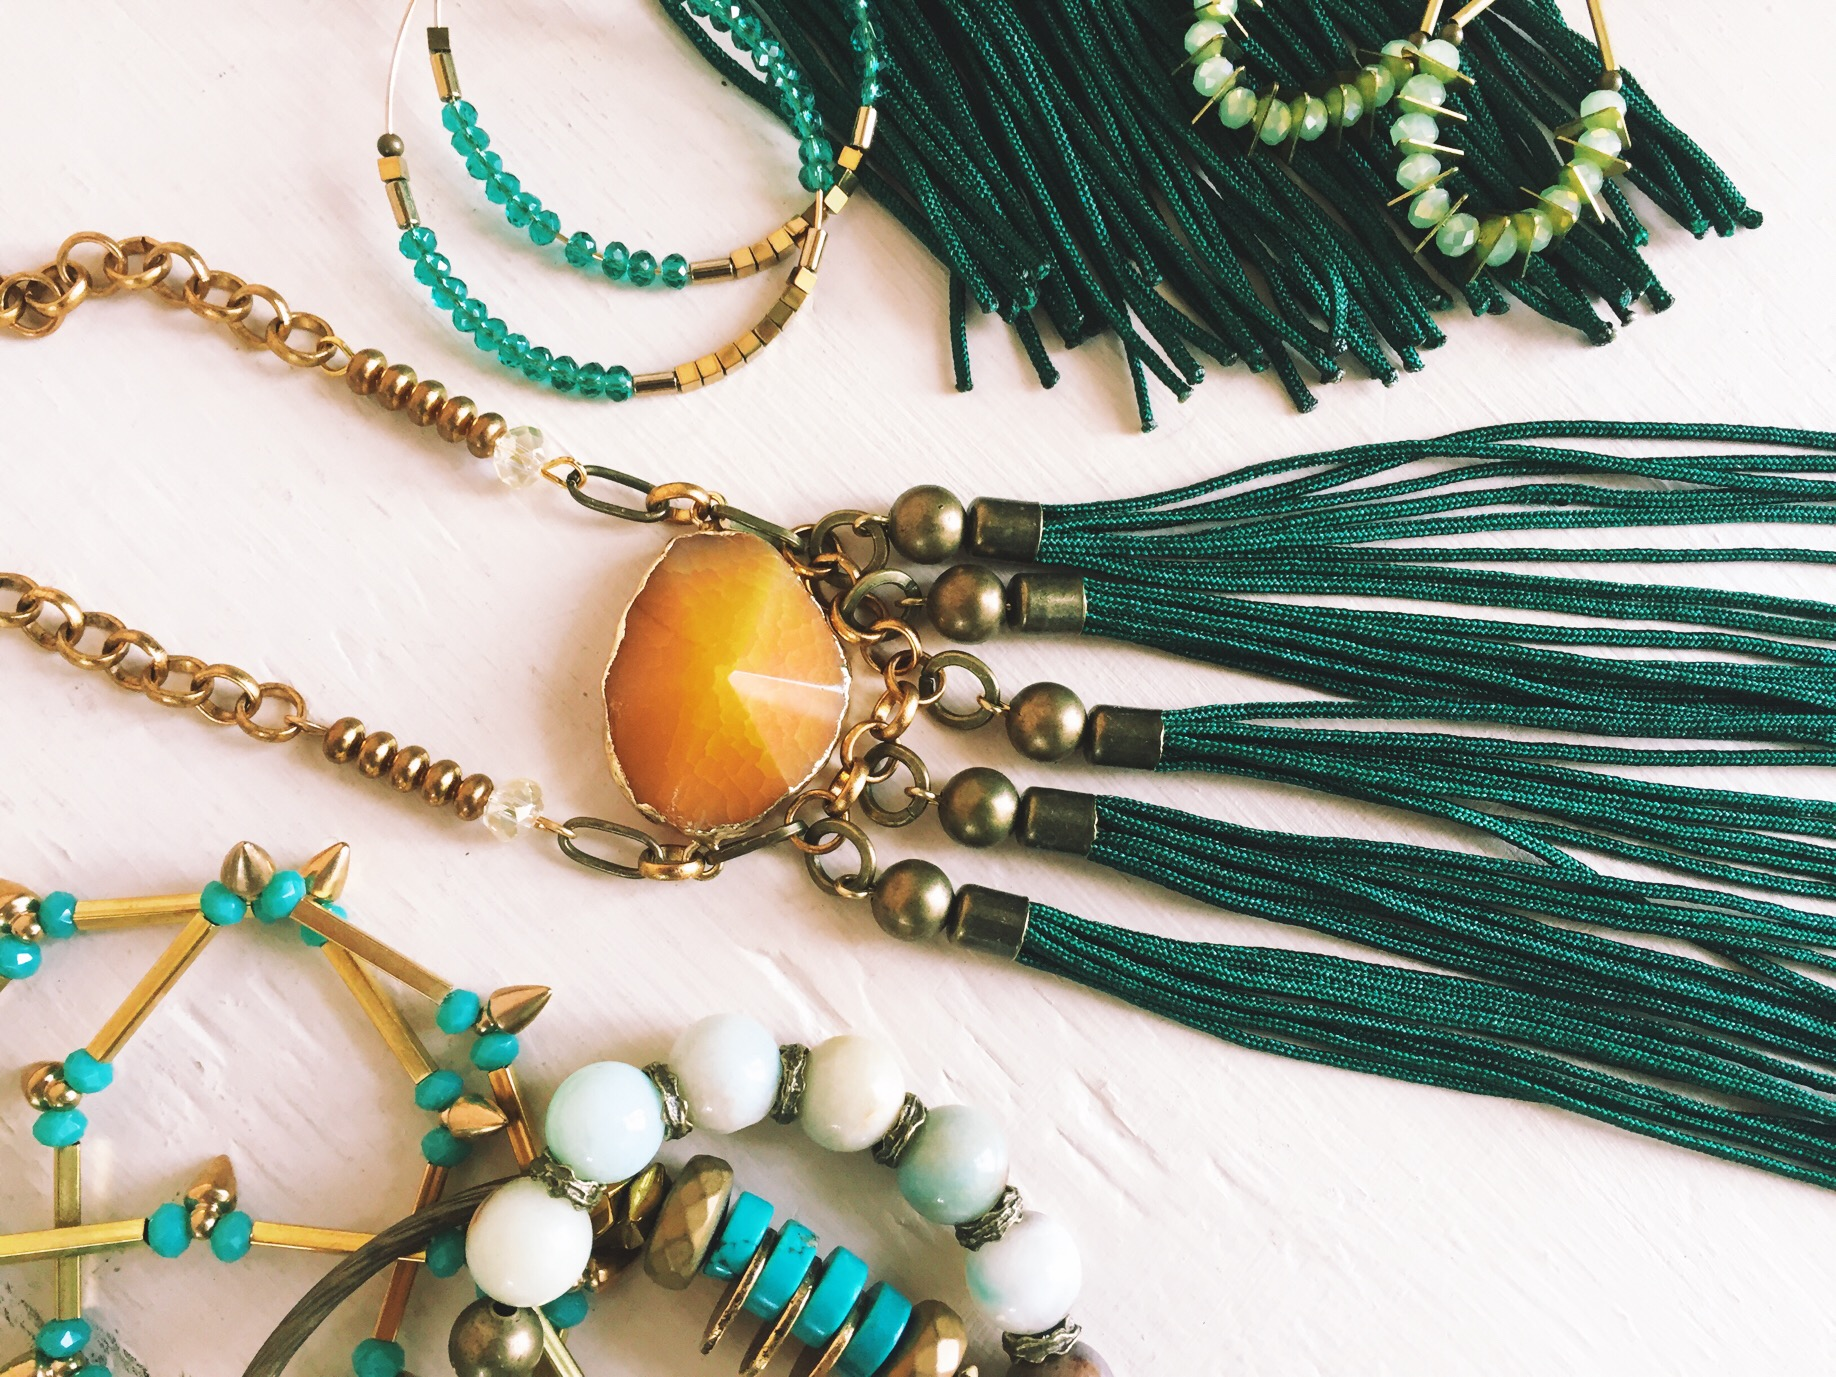 Just a small selection of our green jewelry.